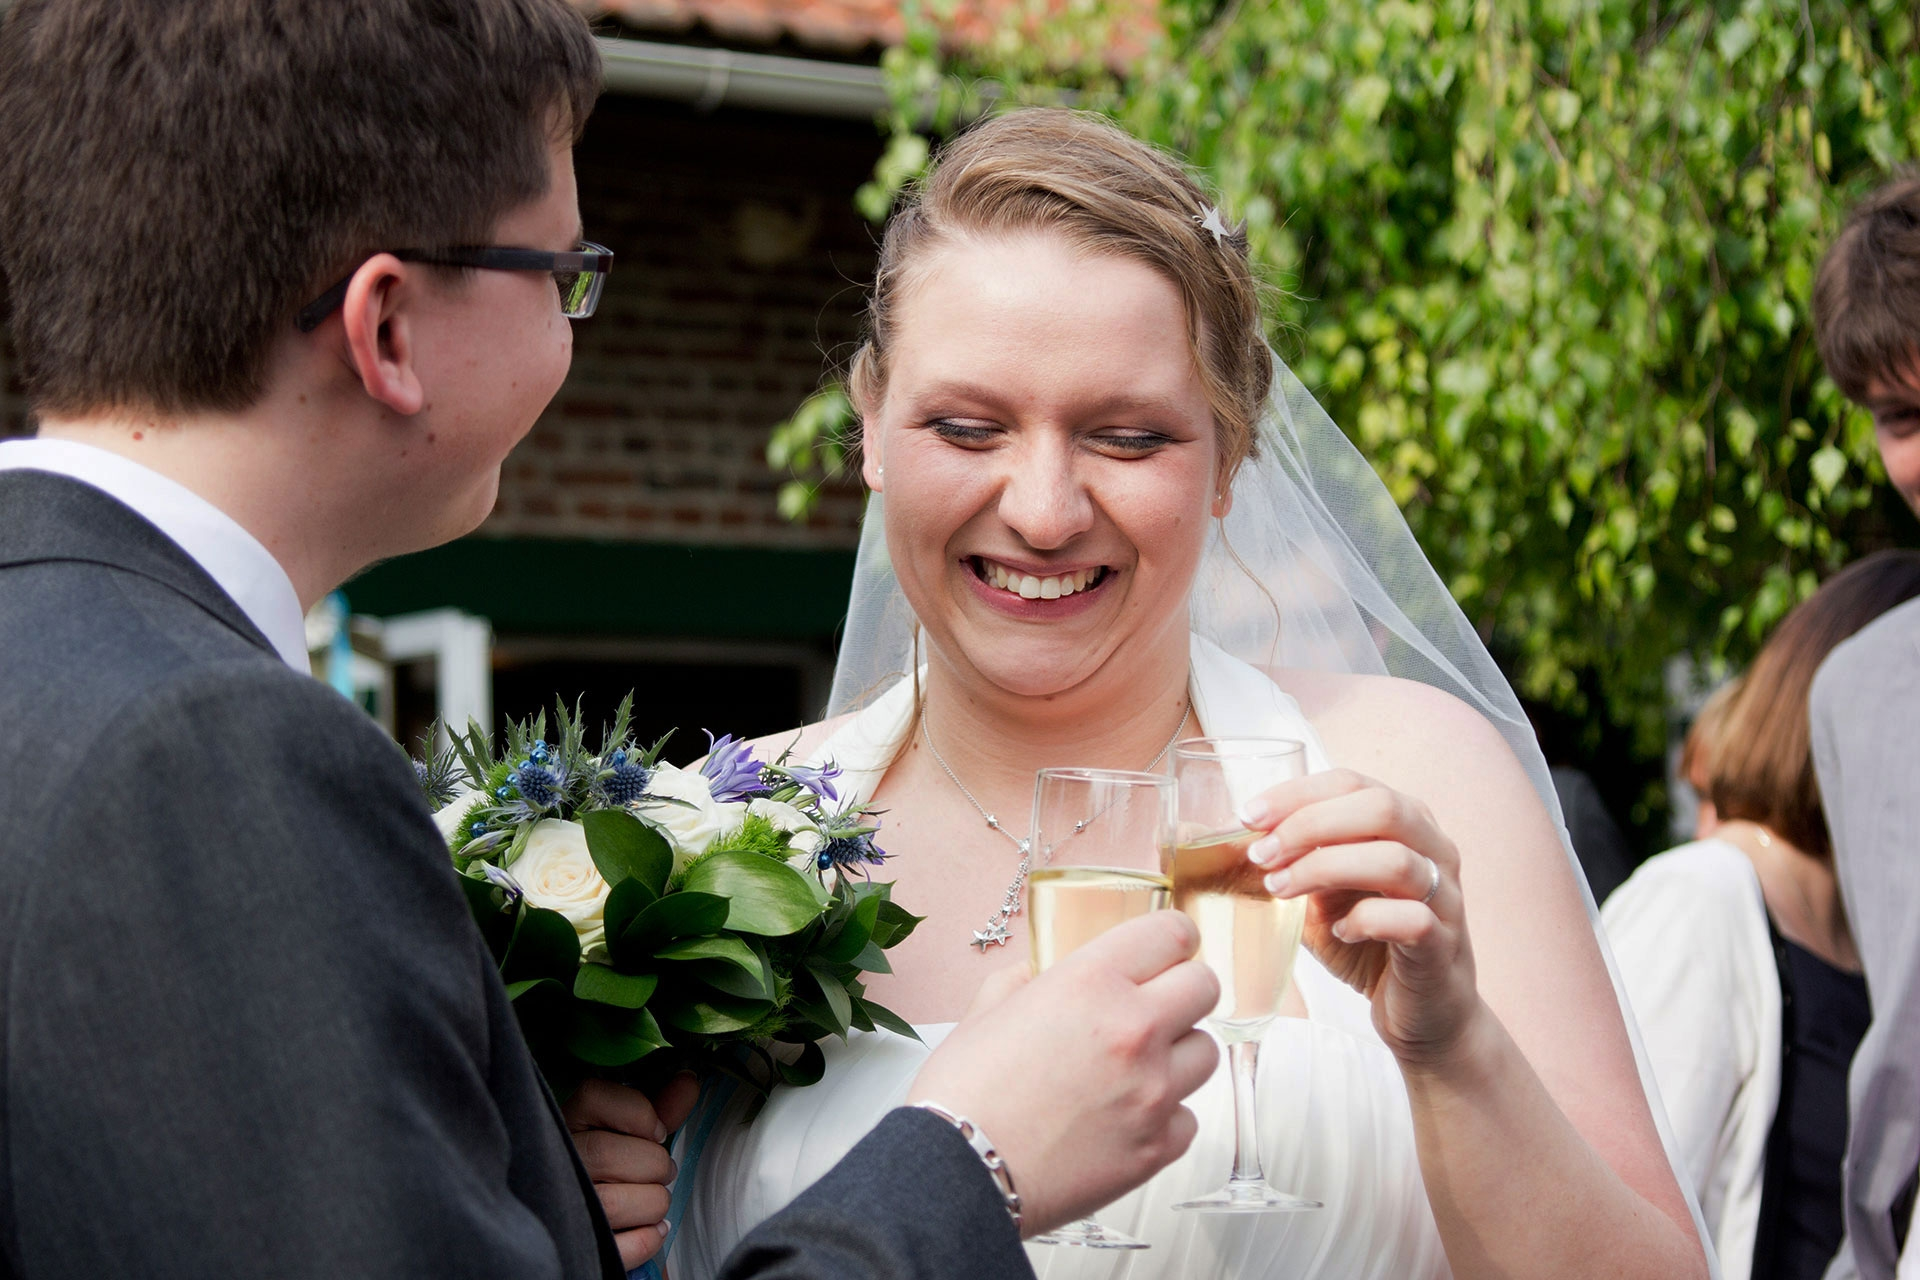 particuliers-mariages-oui-chloemartial-21